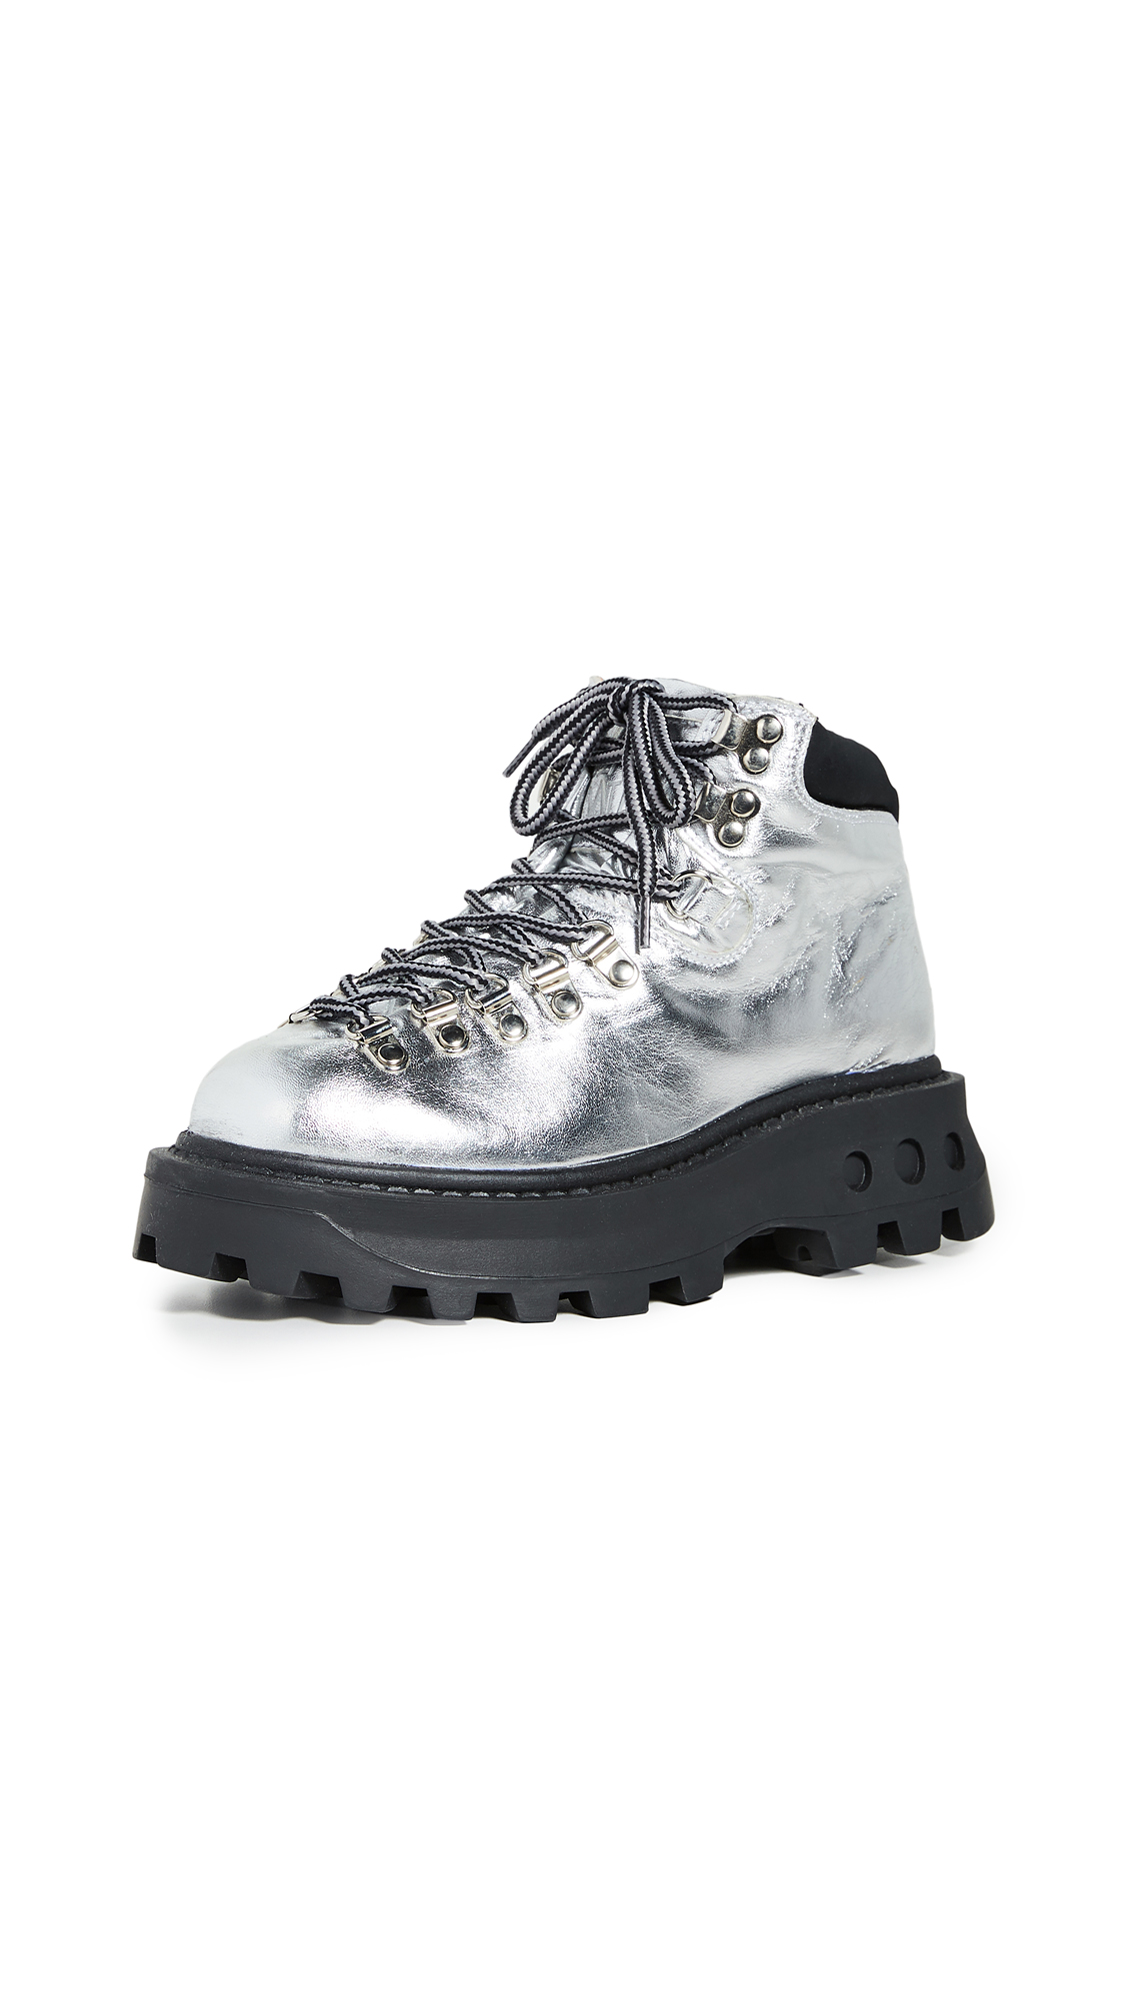 Simon Miller High Tracker Boots - 50% Off Sale